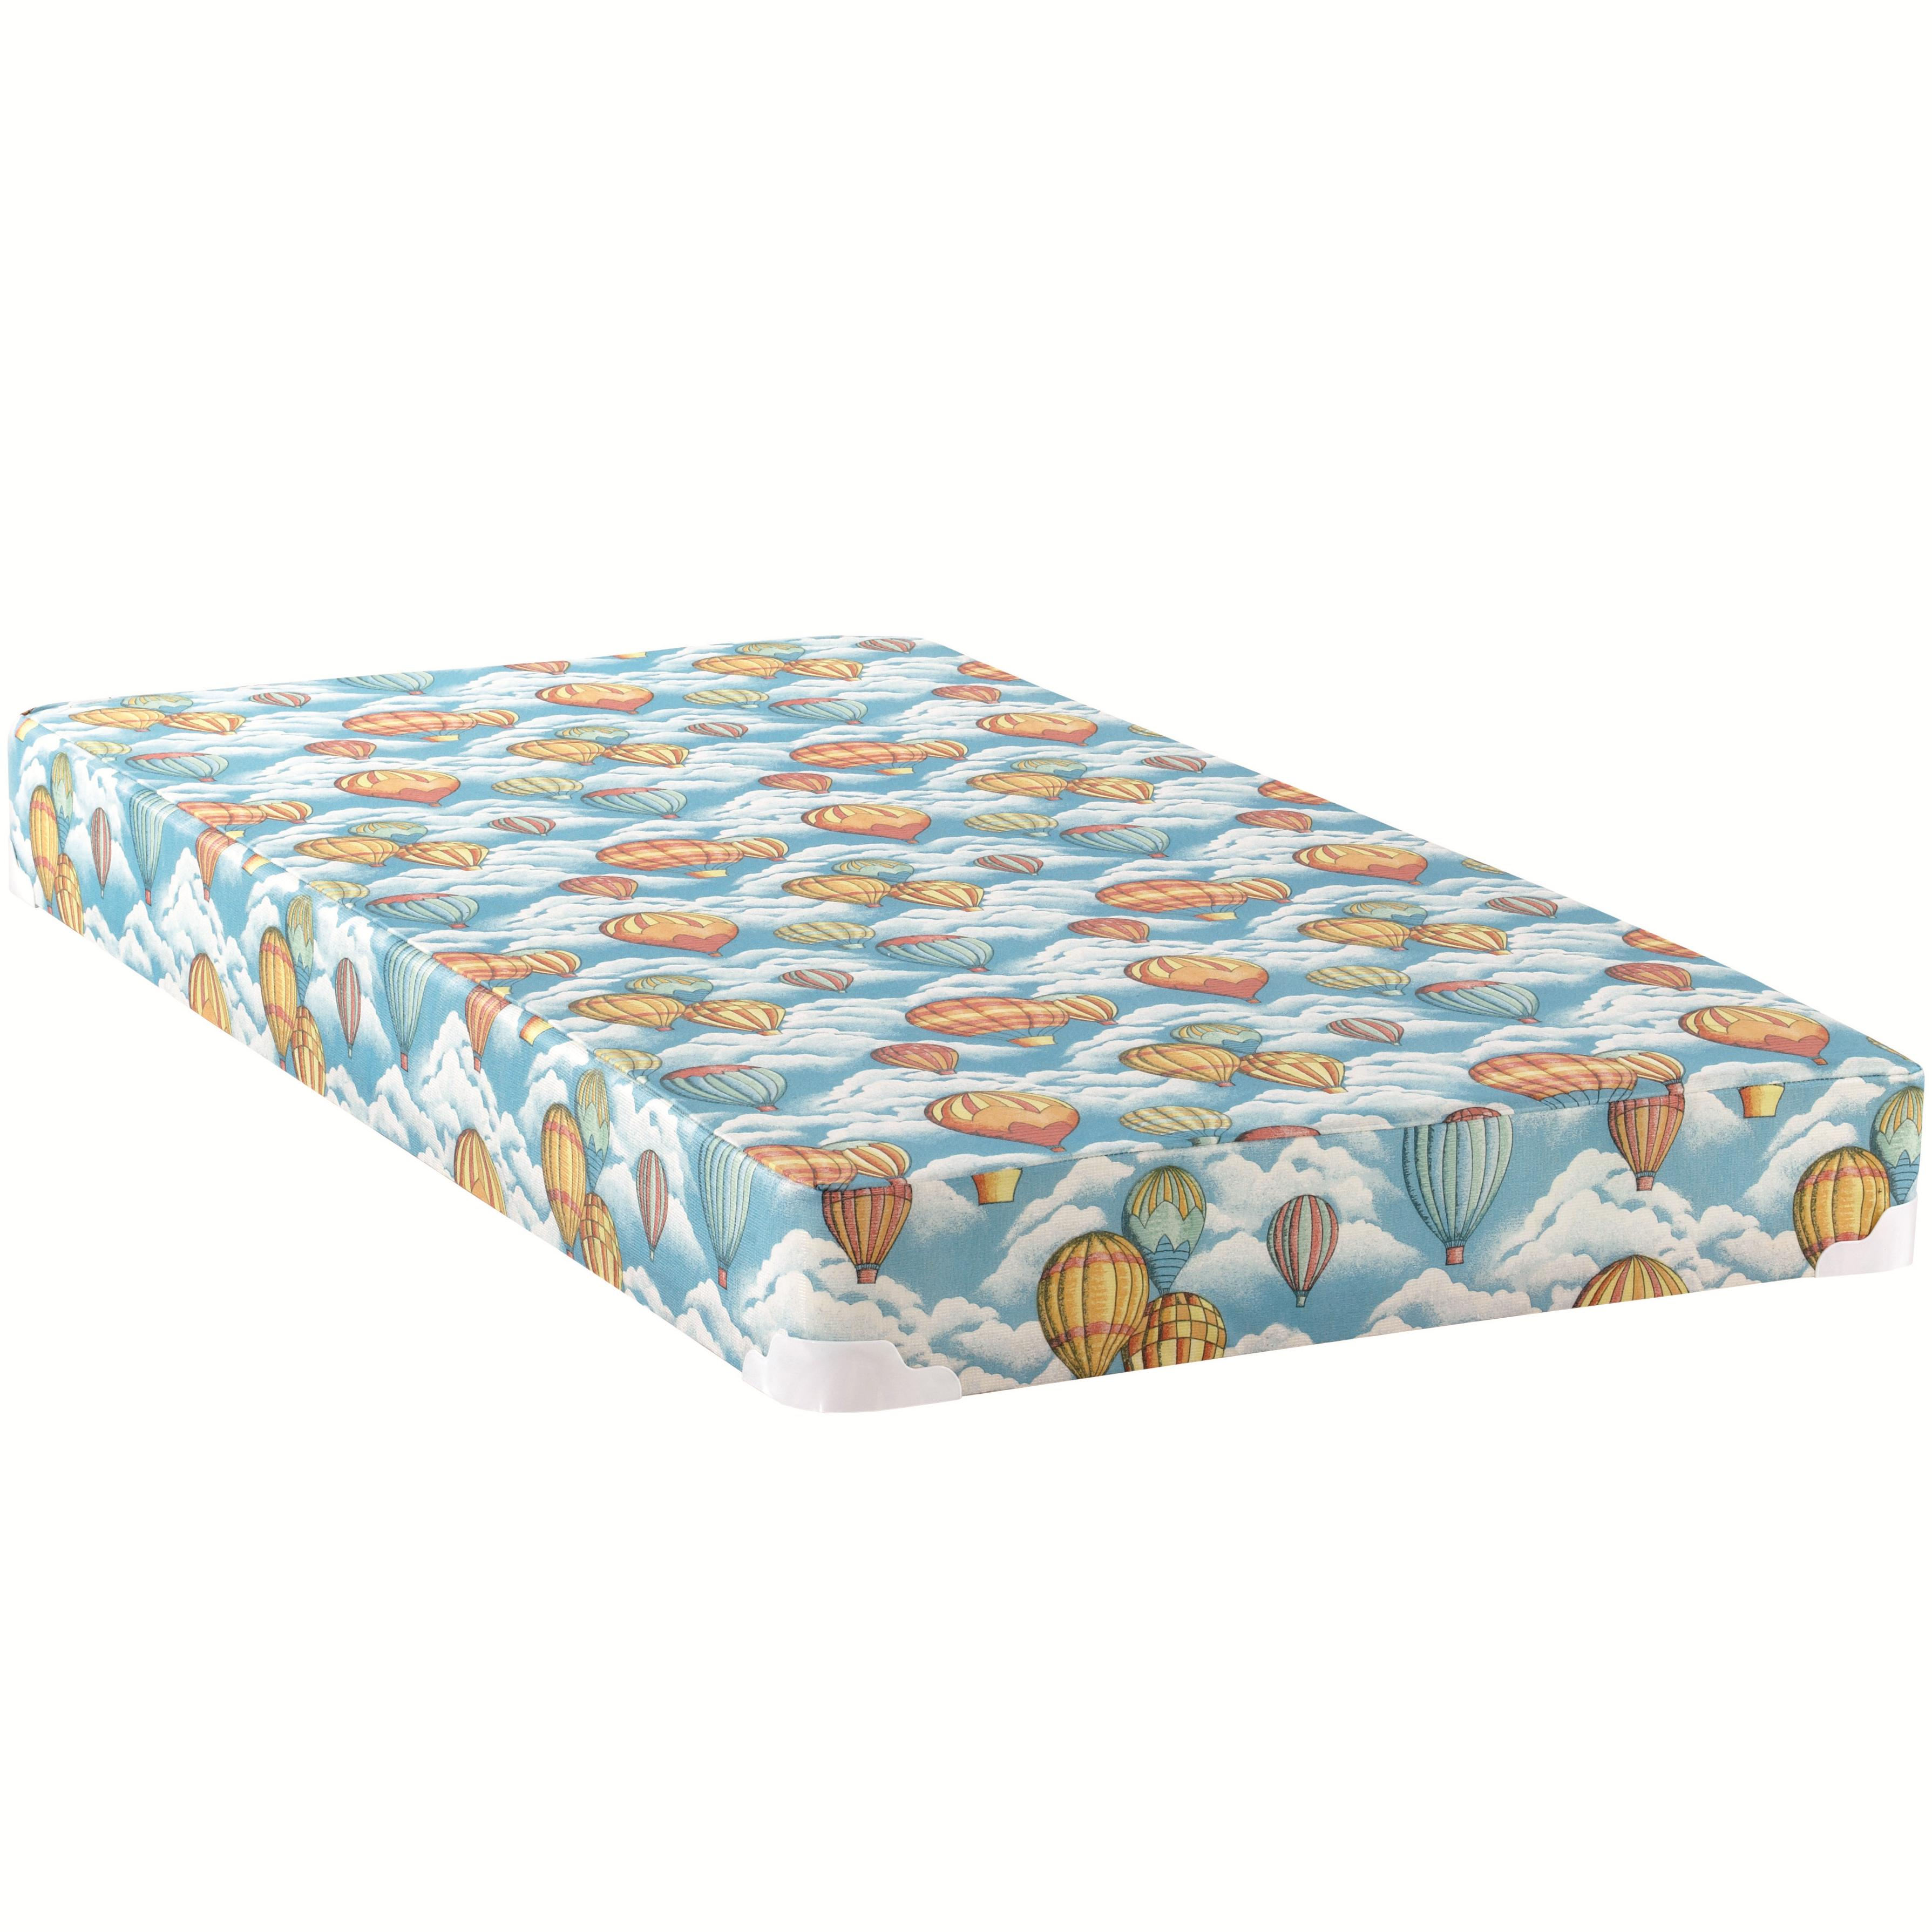 Balloon Mattress Full Mattress with Bunkie by Coaster at Rife's Home Furniture